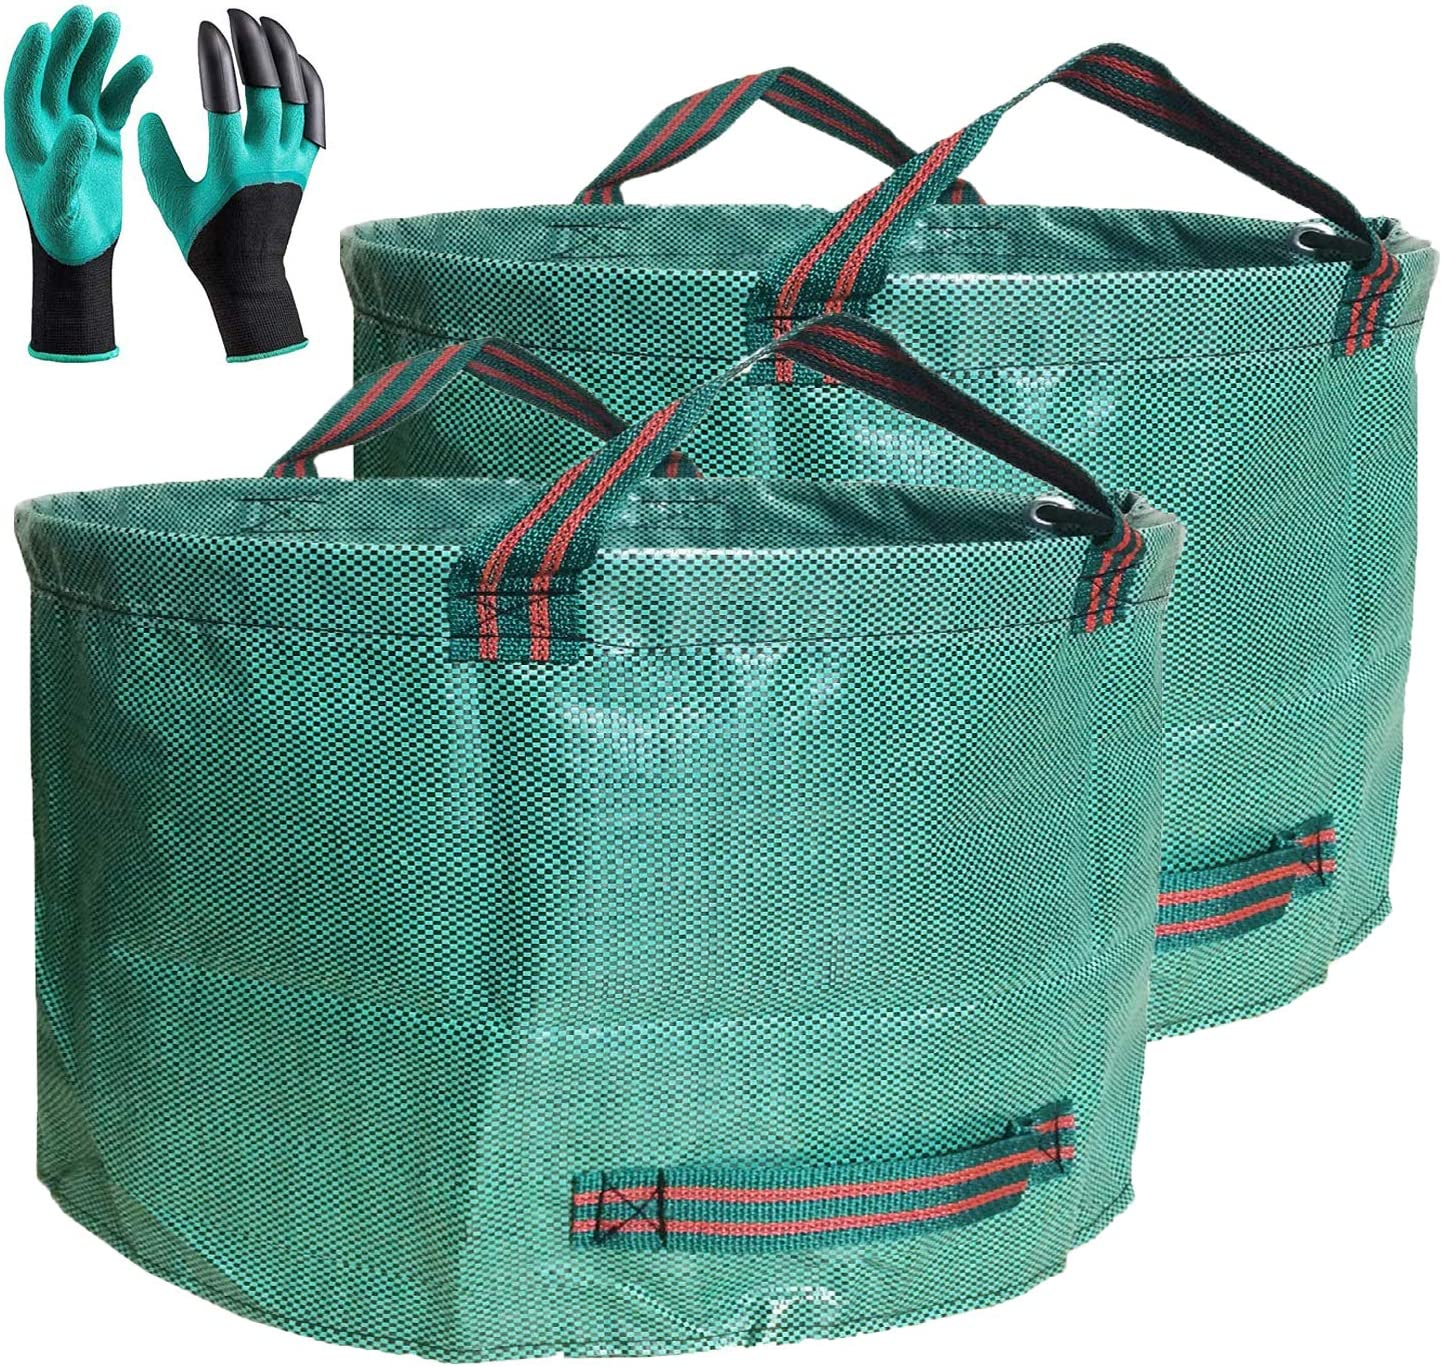 Professional 2-Pack 63 Gallons Lawn Garden Bags Yard Waste Bag (D31, H19 inches) with Gardening Gloves,Standable,Reusable Leaf Grass Bag,Garden Trash Containers,Lawn Yard Waste Bags with 4 Handles